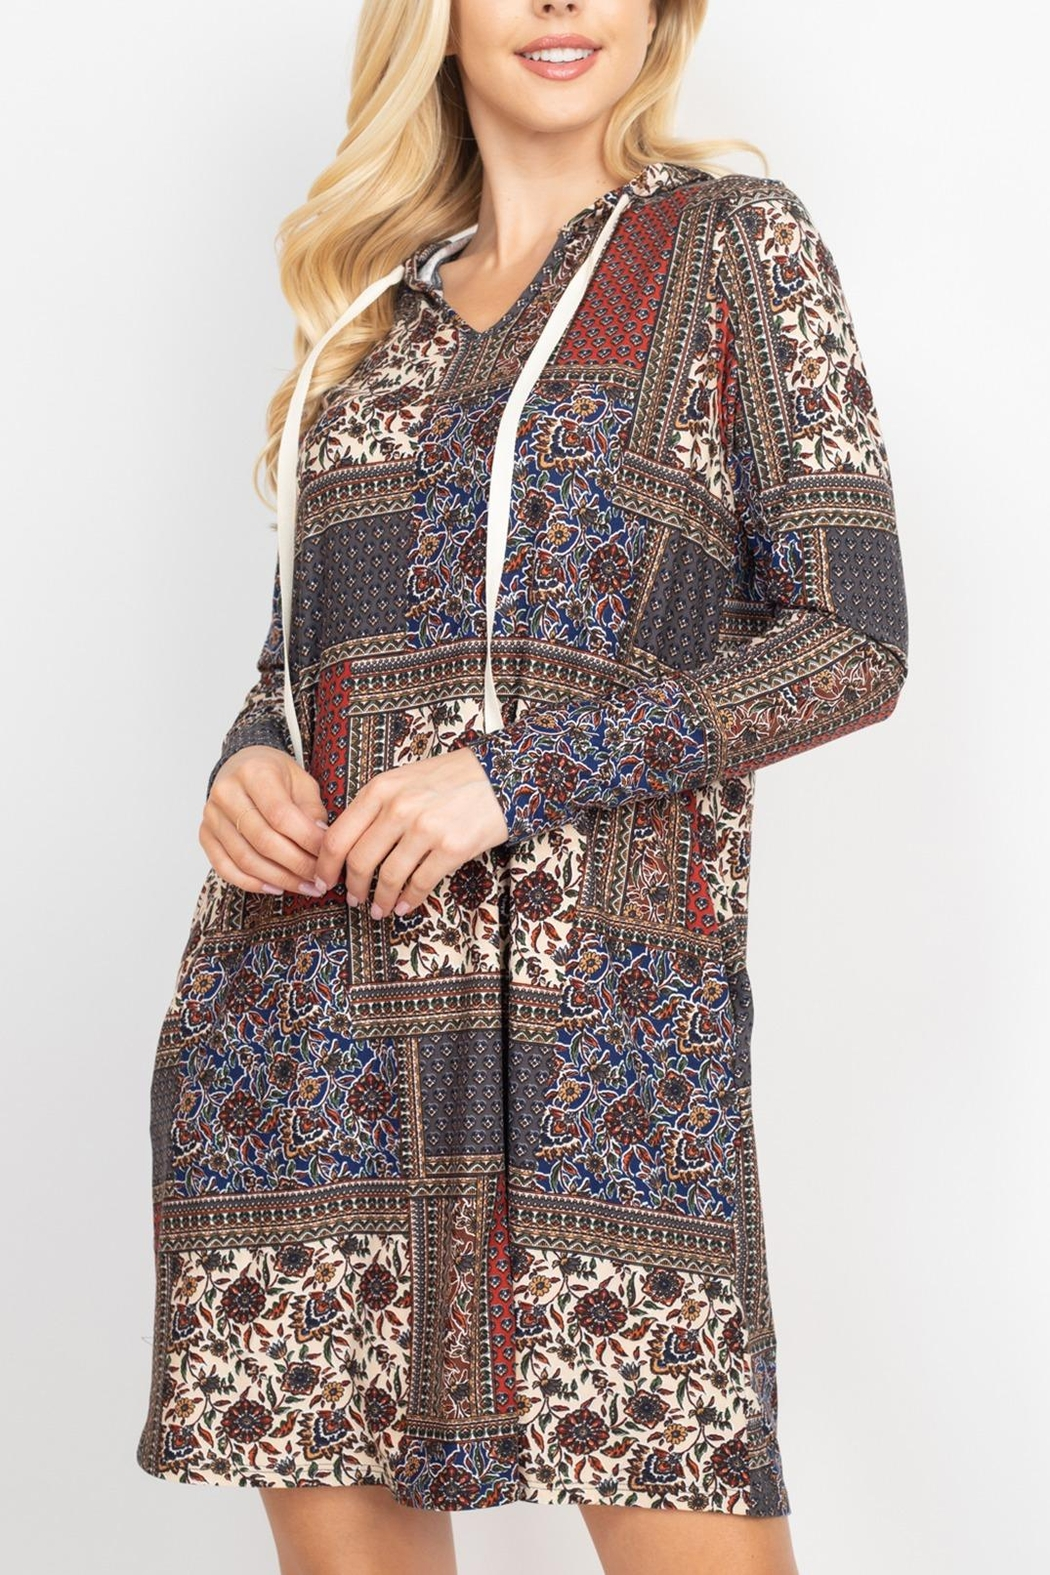 Riah Fashion Long-Sleeve-Ethnic-Floral-Self-Tie-Hoodie-Dress - Front Cropped Image